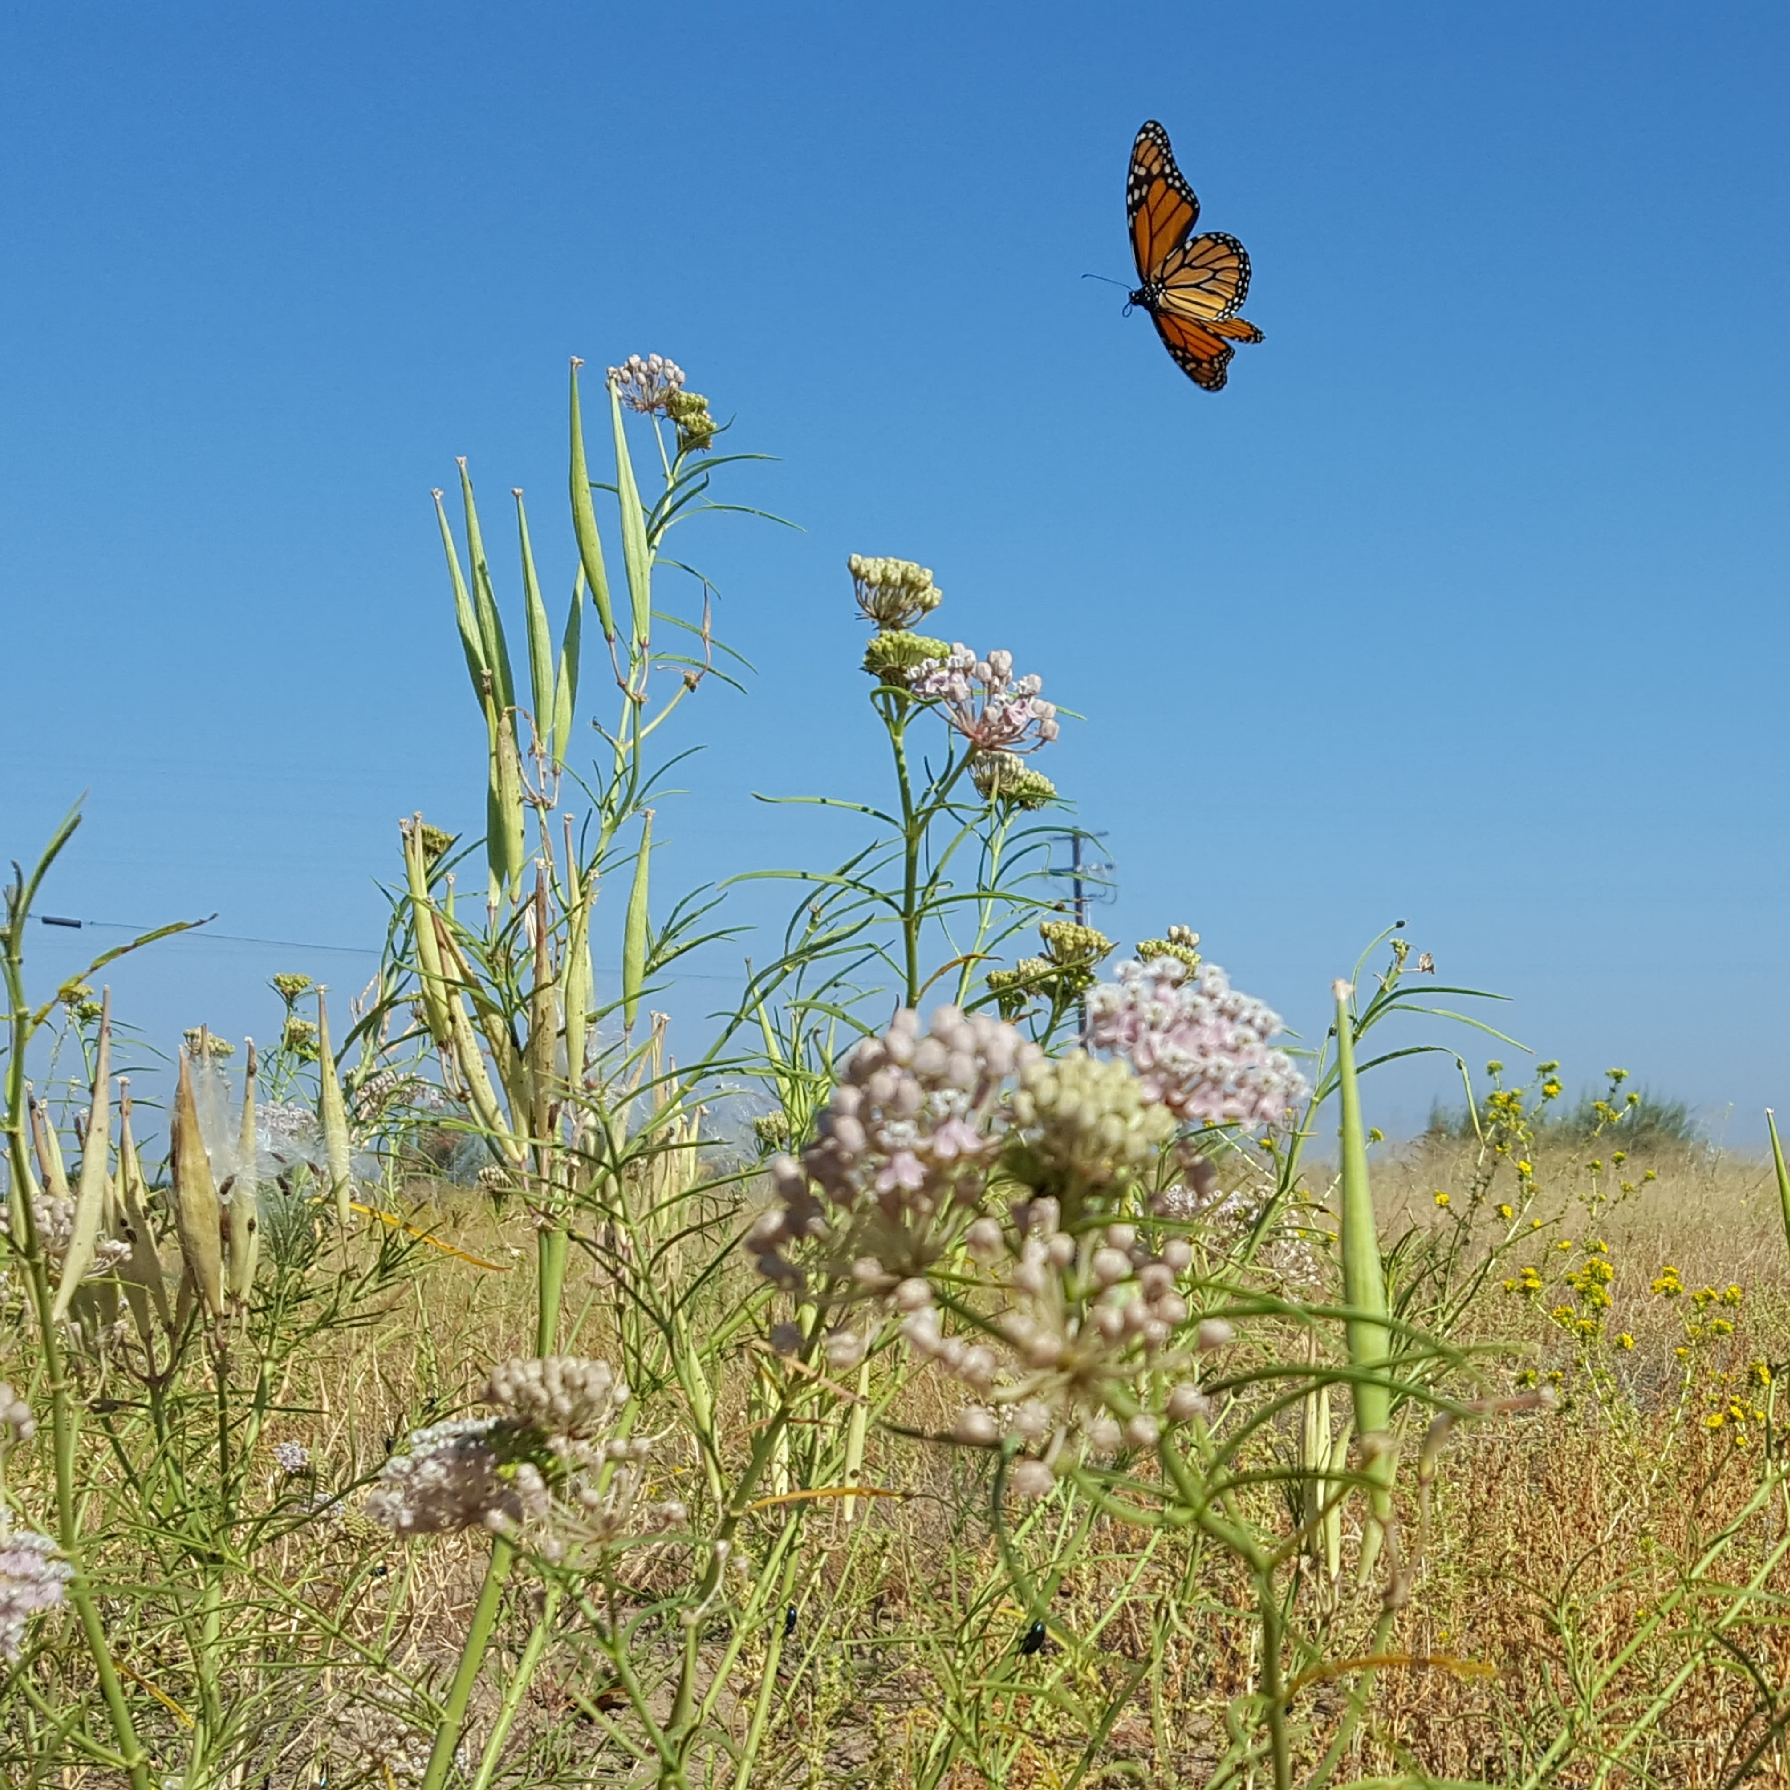 A monarch soars above pink milkweed in an arid landscape.